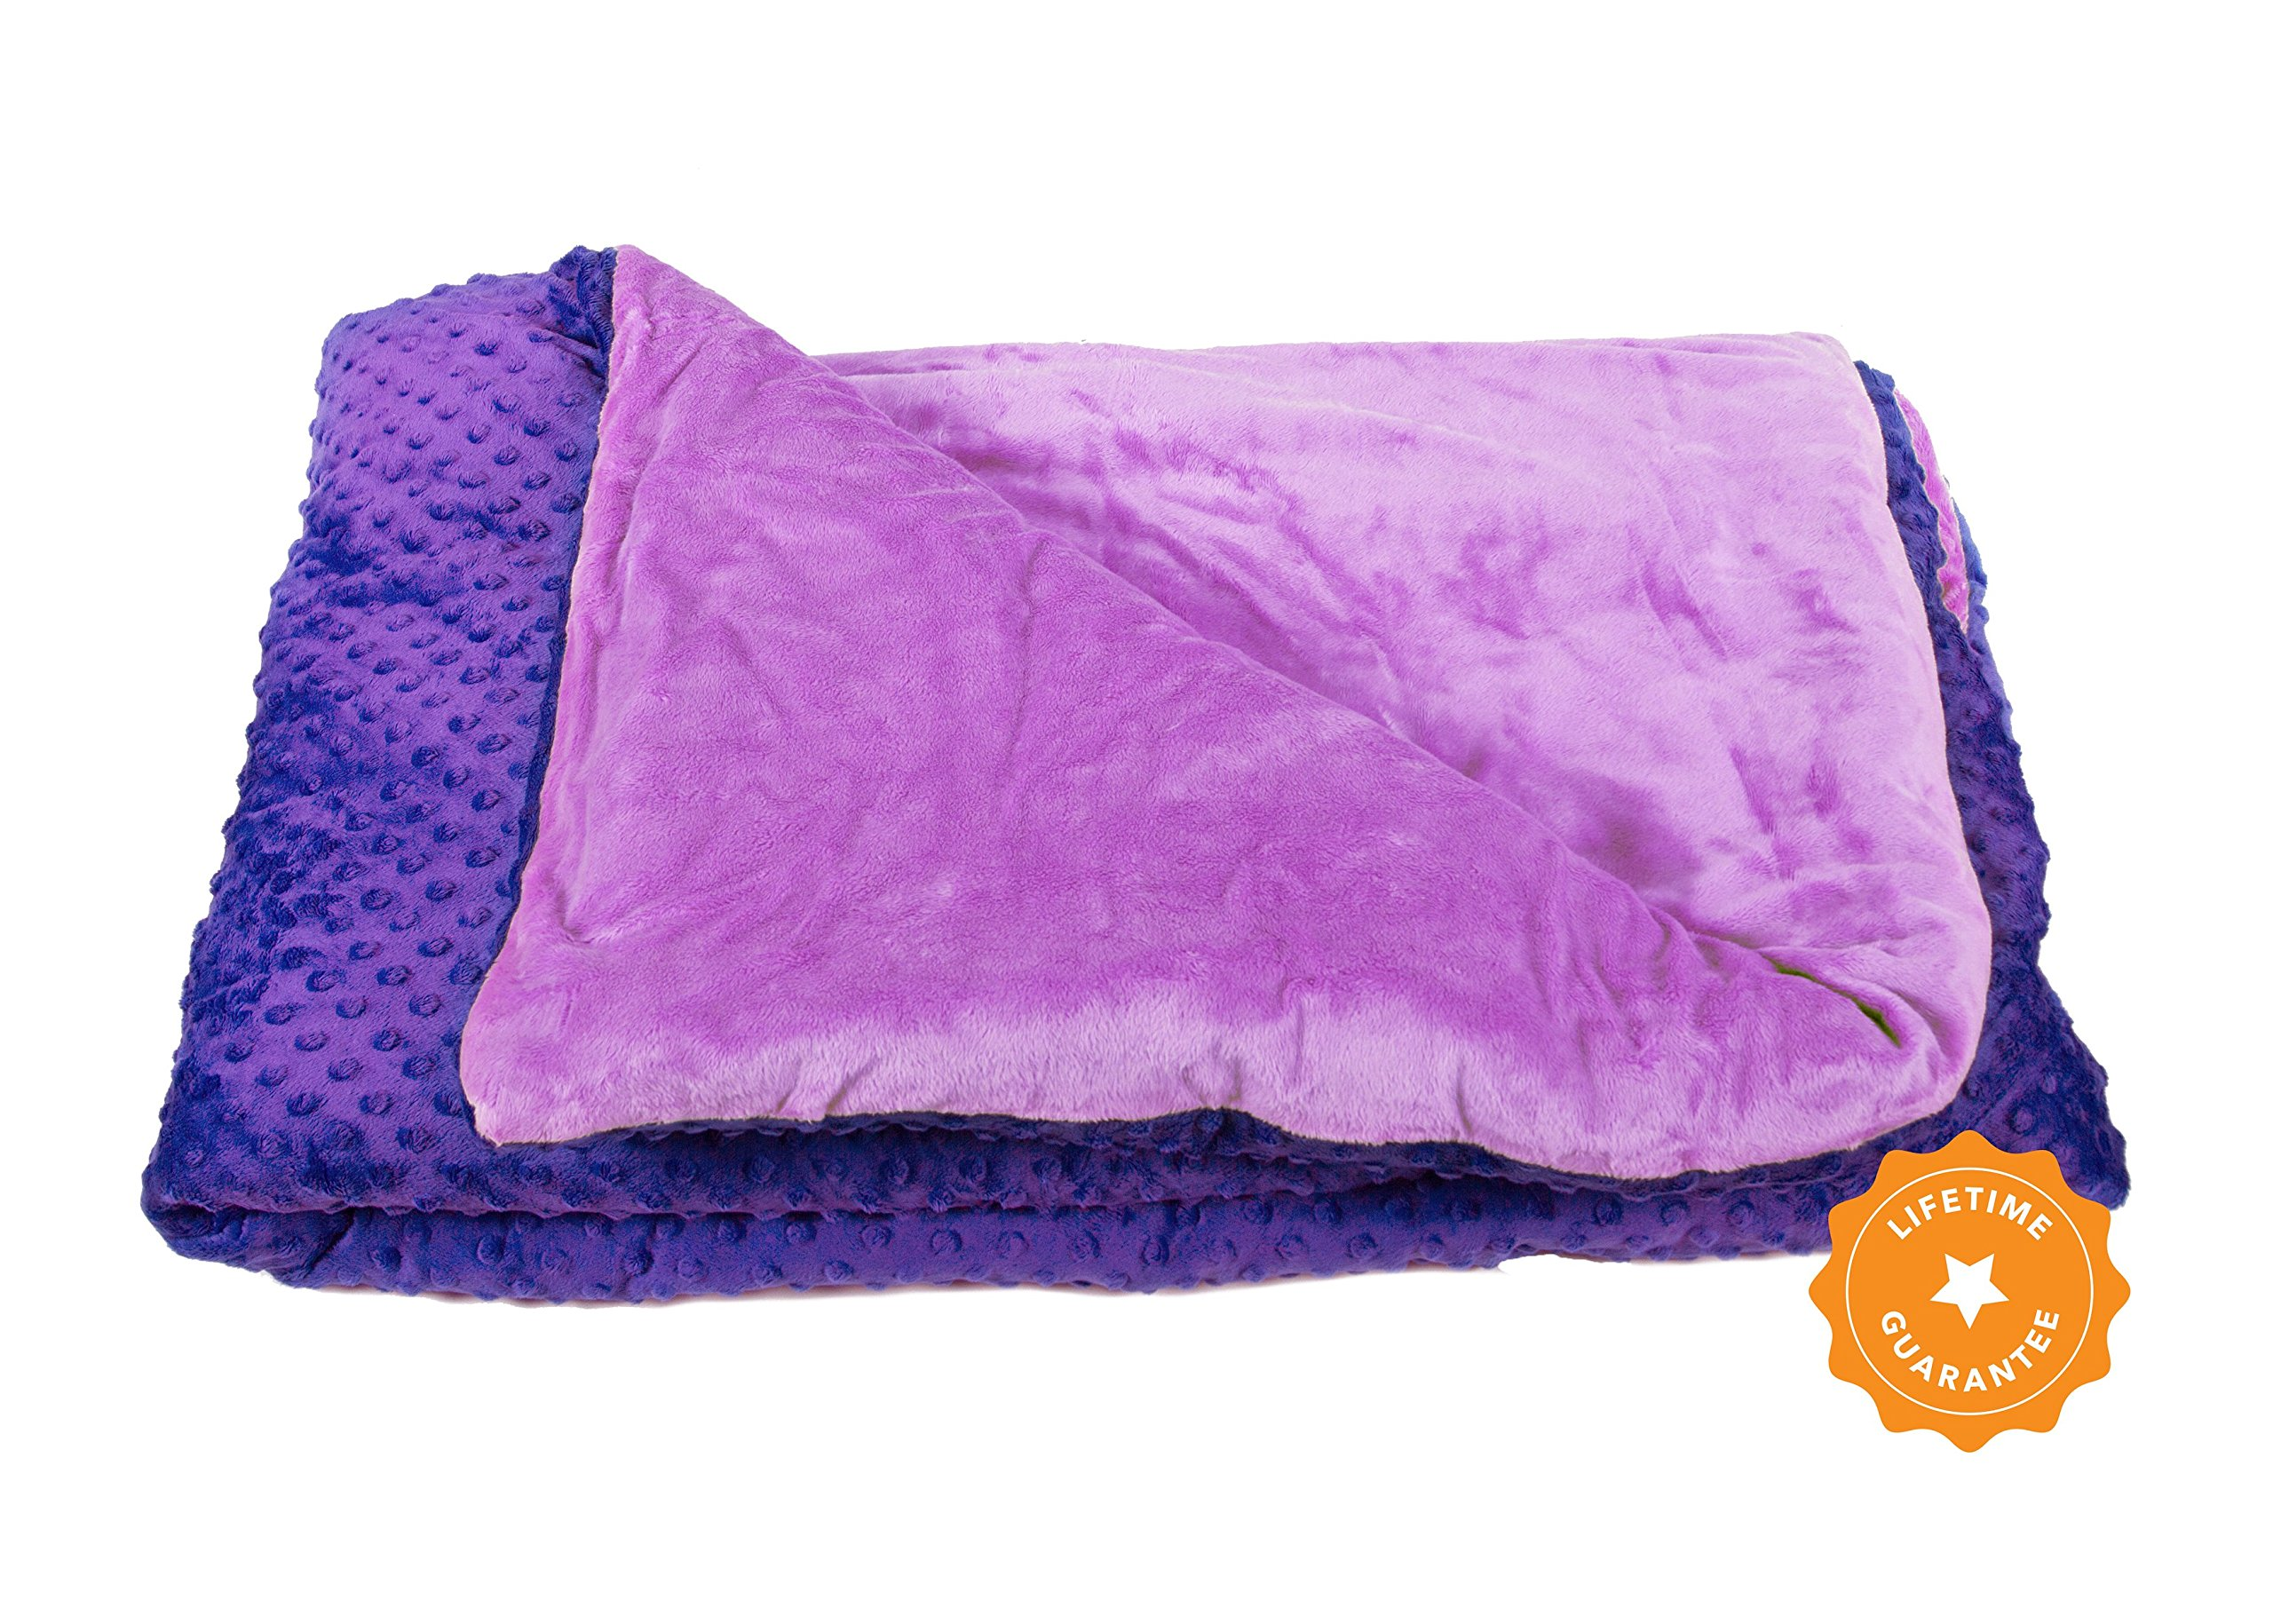 25lb Weighted Blanket for Autism & Anxiety - Great for Sensory Processing Disorder - Perfect for those who weigh 200+lbs - The First Blanket with Cotton and PolyPellets by Harkla